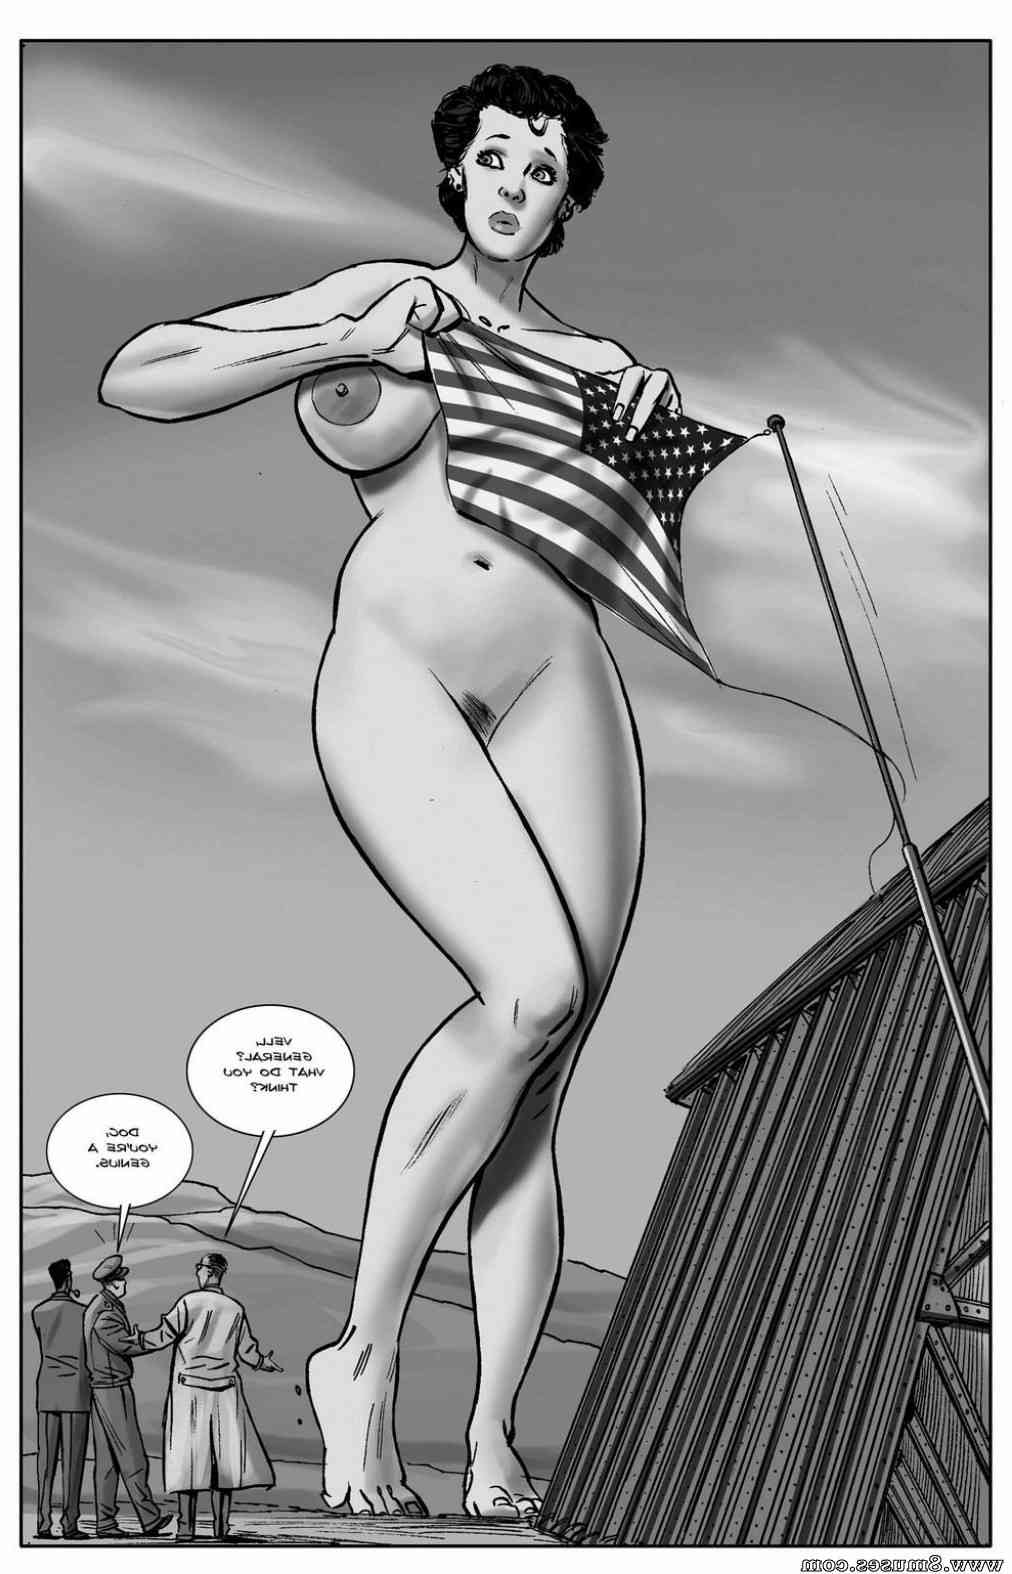 Giantess-Club-Comics/Project-Overman Project_Overman__8muses_-_Sex_and_Porn_Comics_22.jpg